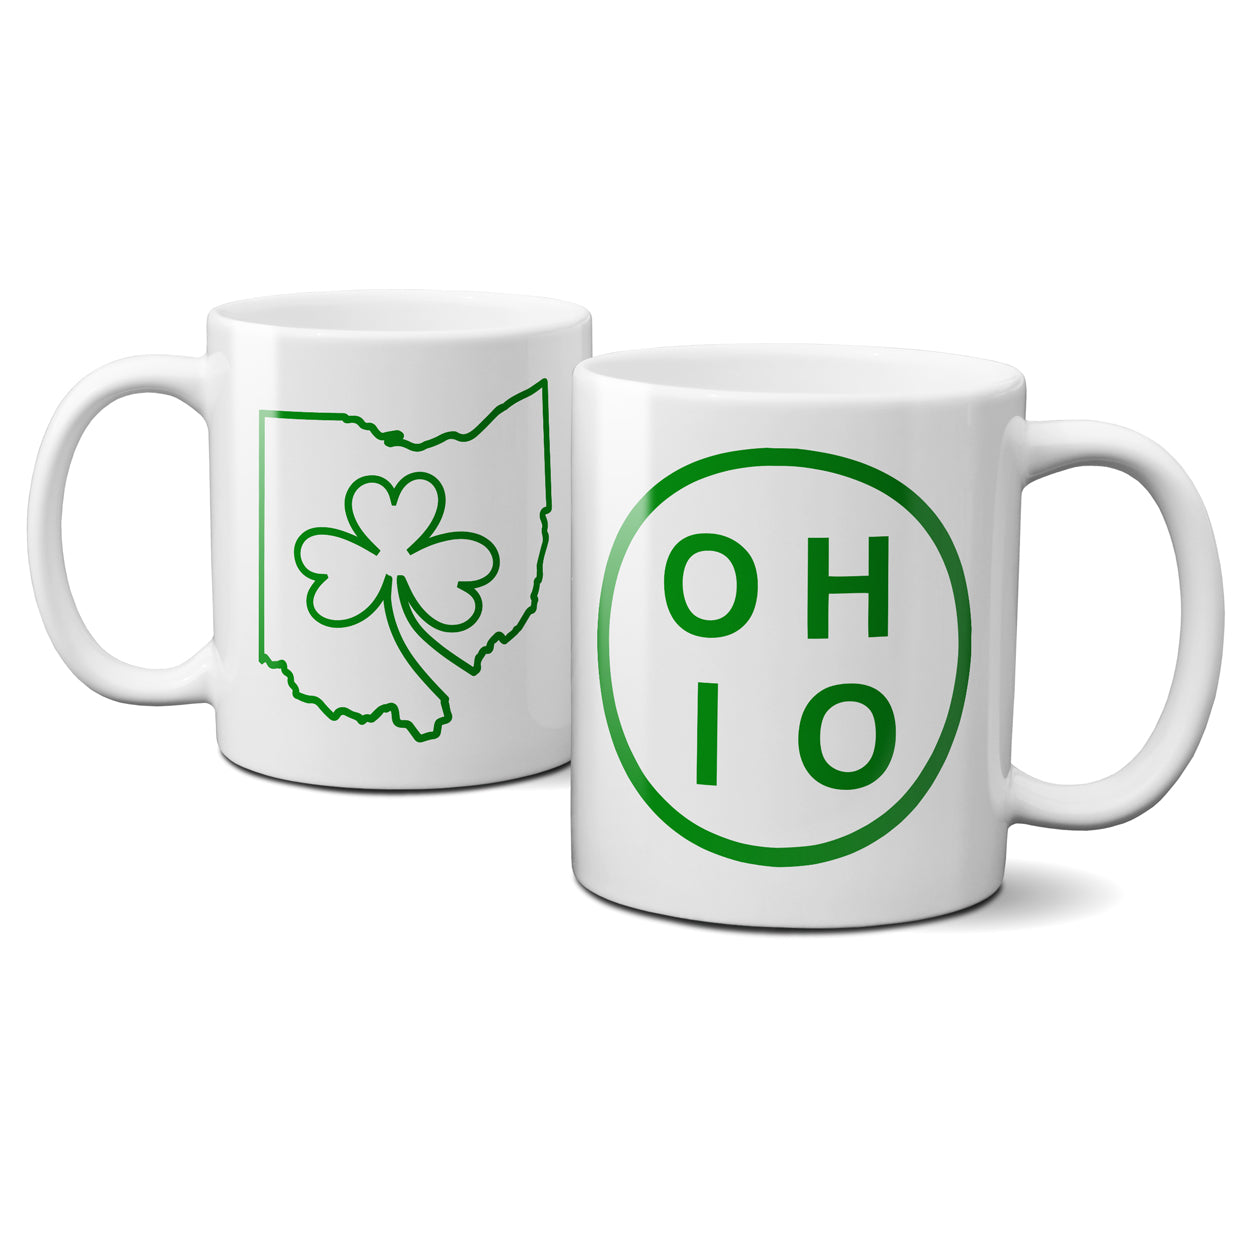 Irish Ohio Mug